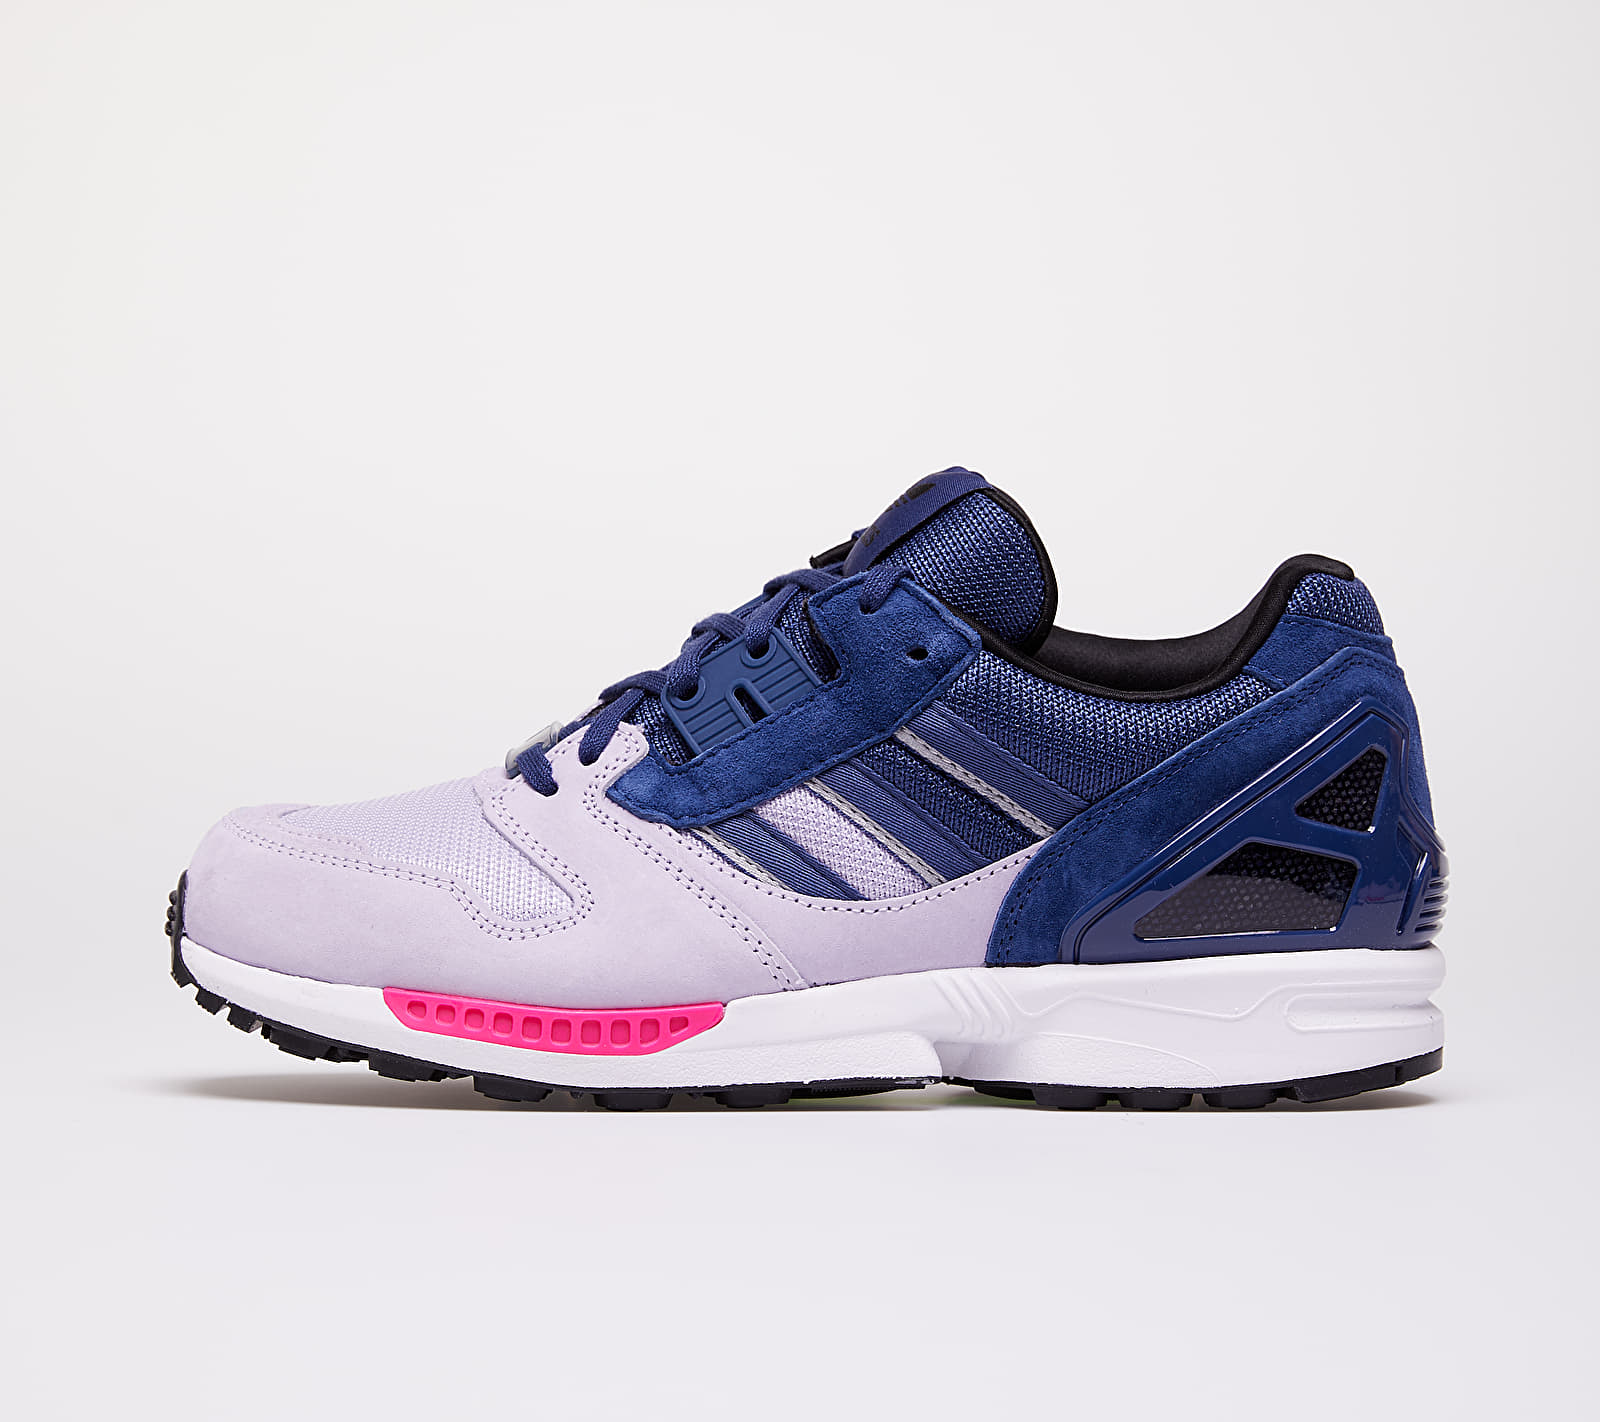 adidas ZX 8000 W Purple Tint/ Tech Indigo/ Core Black 1